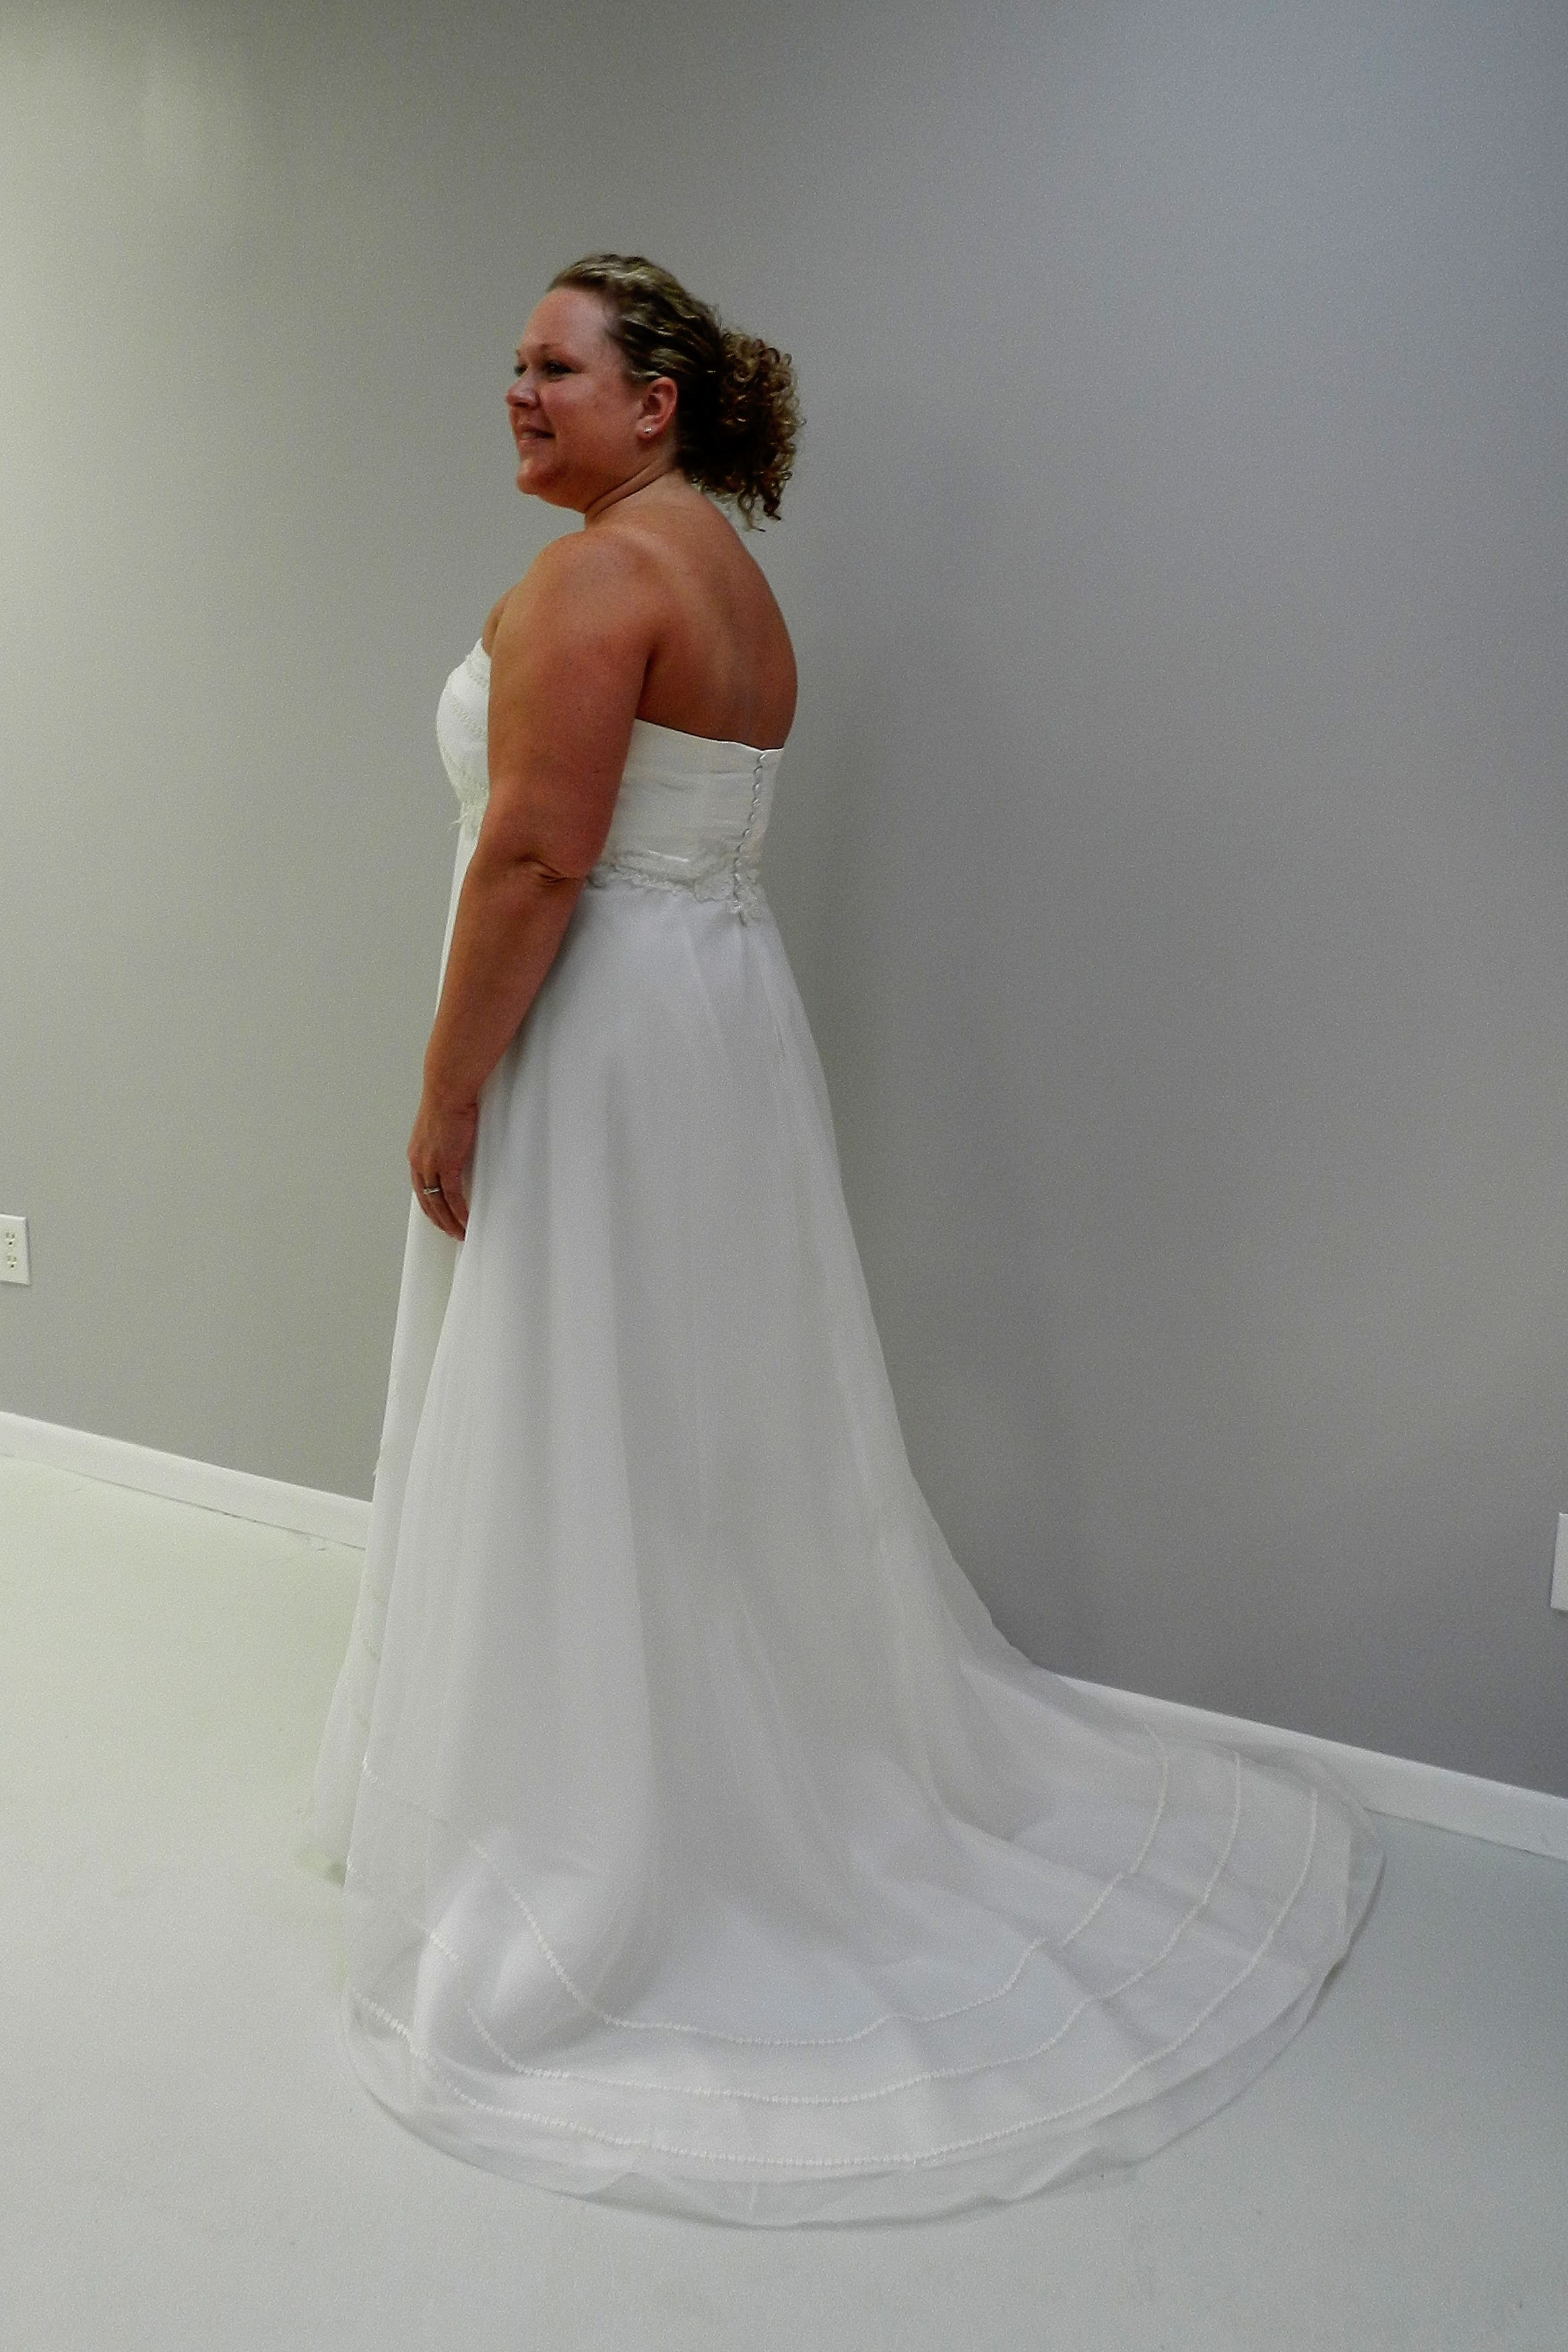 Custom made wedding dress  Custom made wedding dress made from the fabric of her motherus